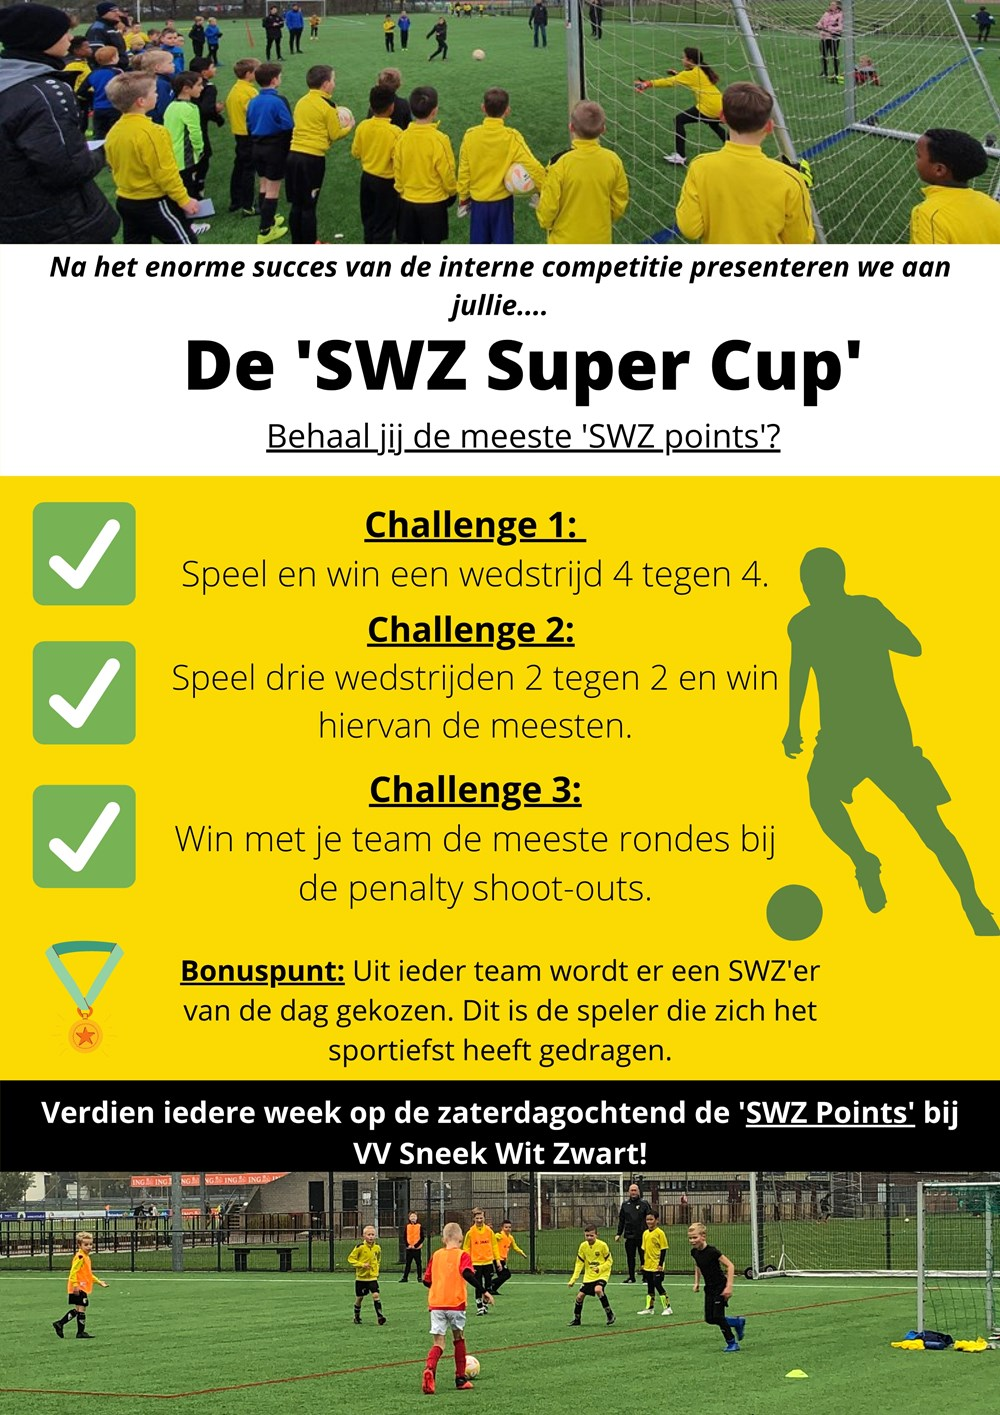 Poster_SWZ_Super_Cup1.jpg